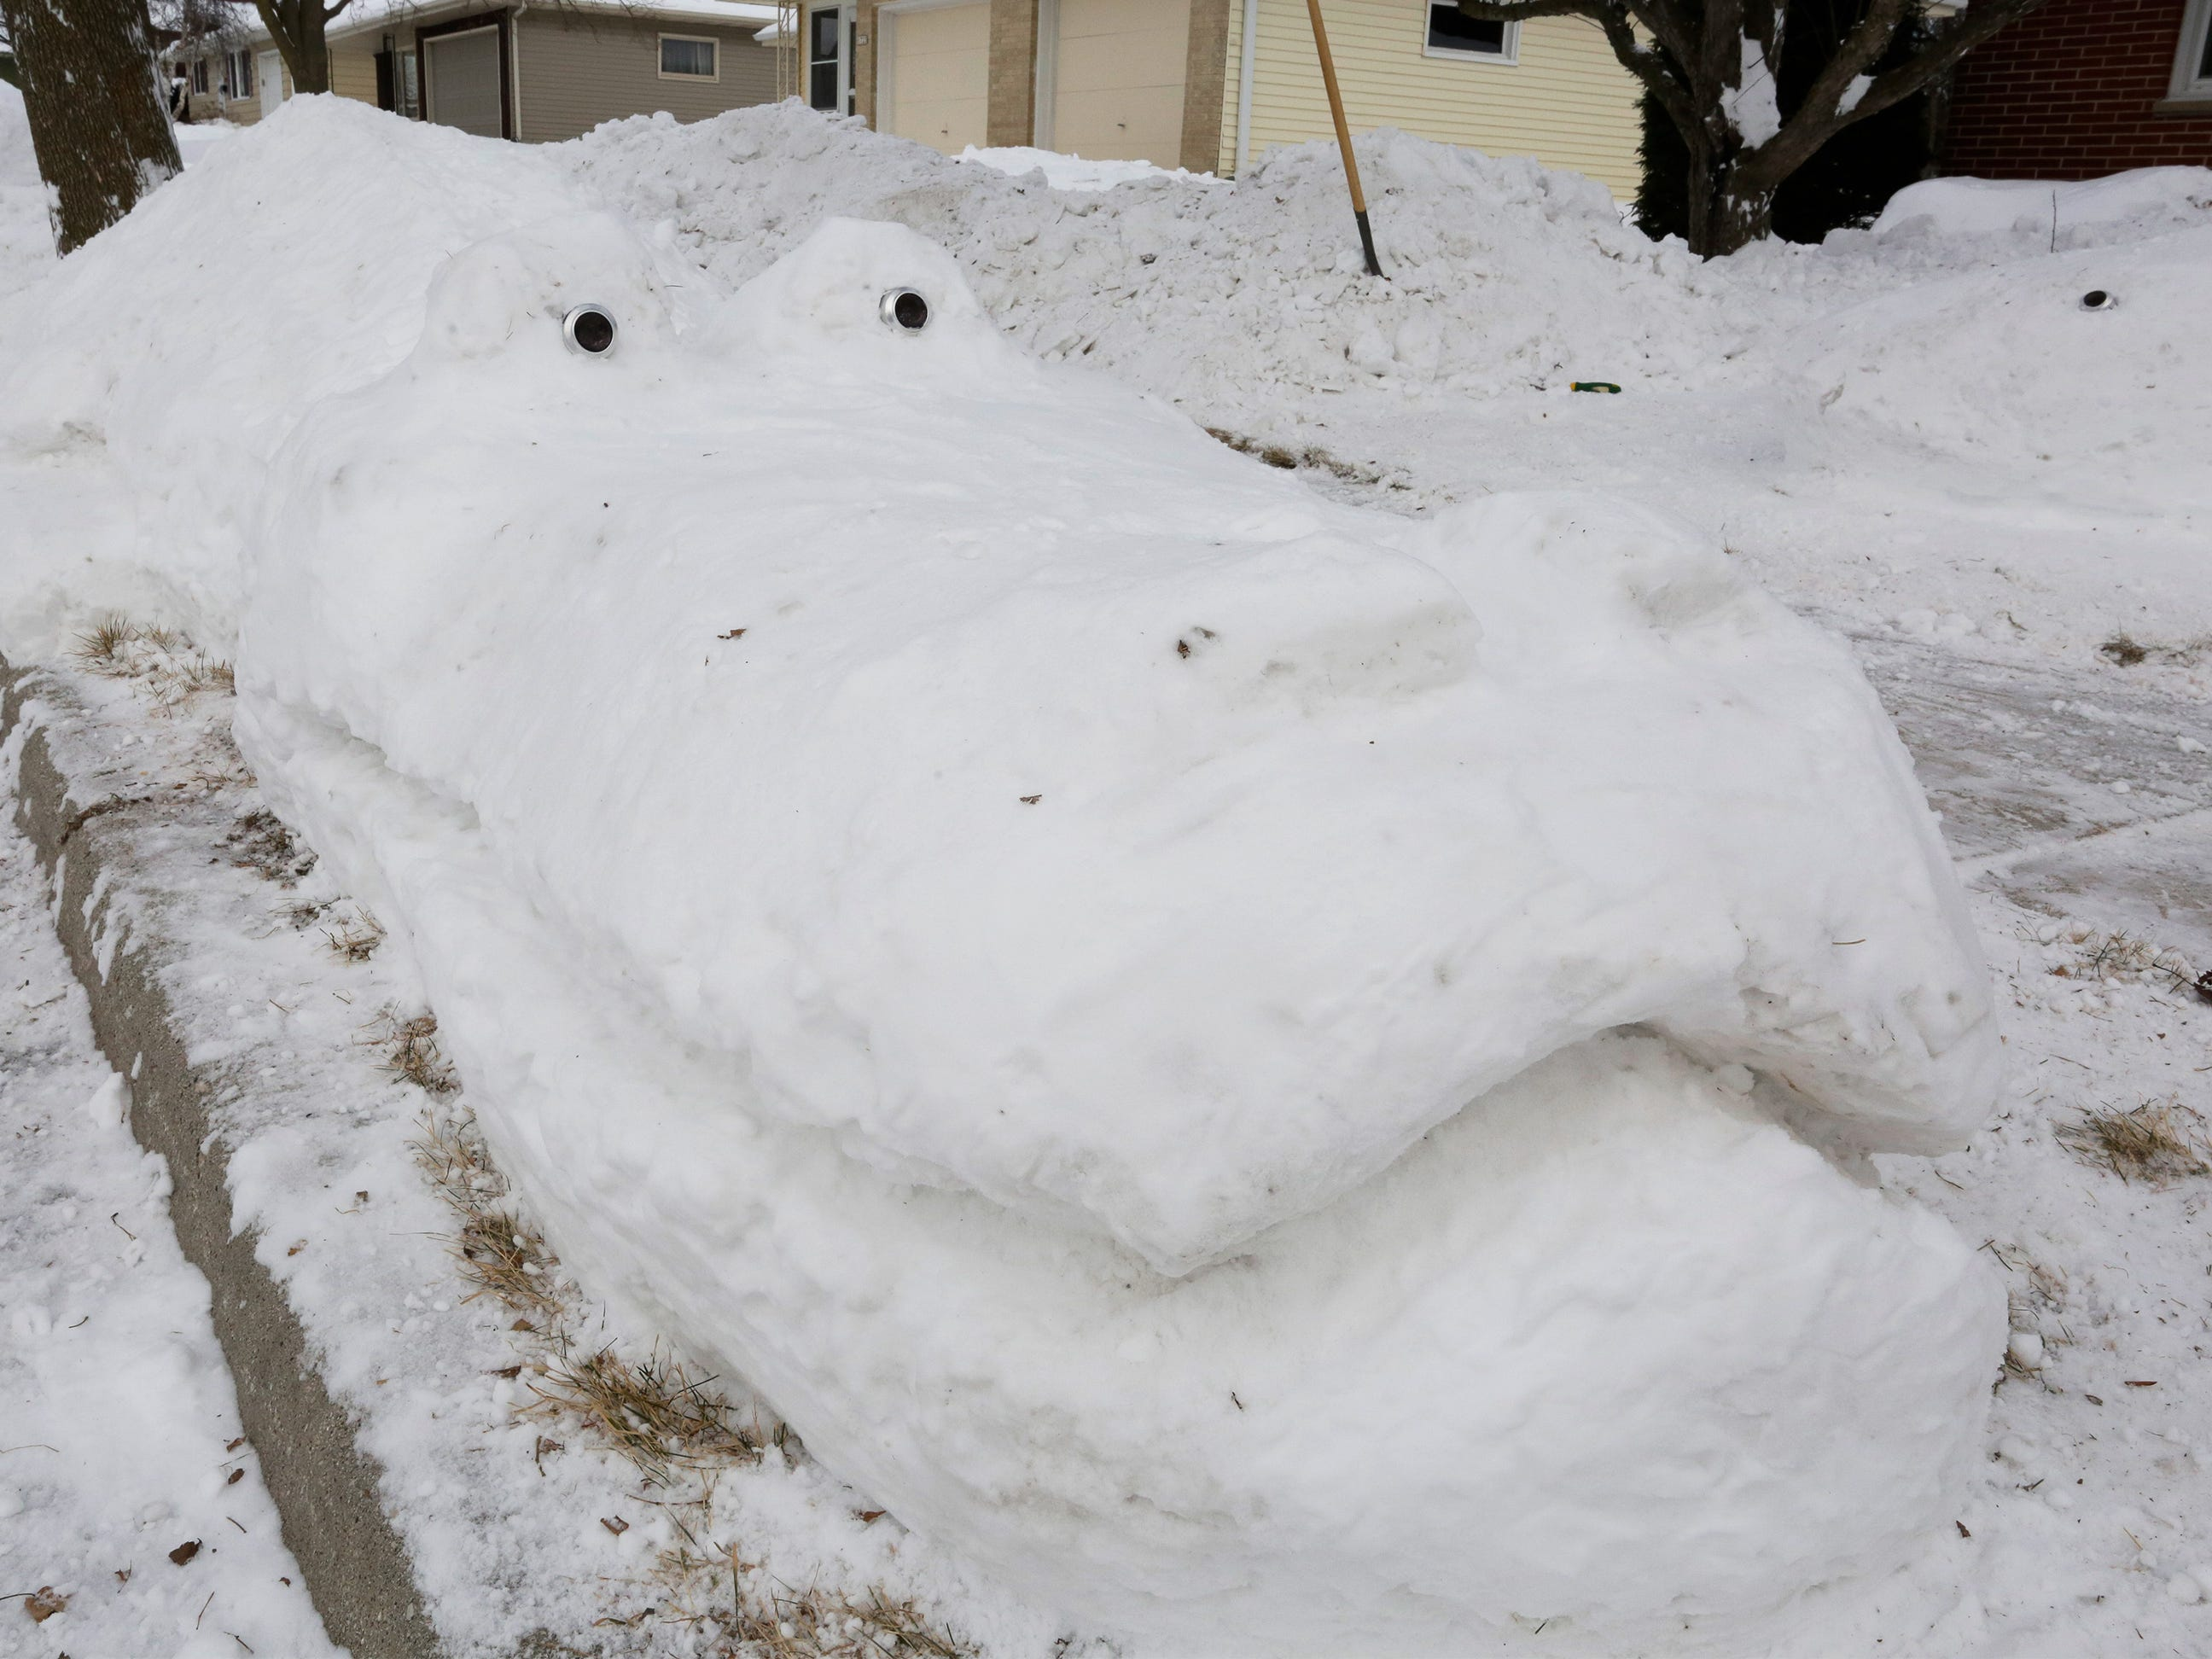 The crocodile snow sculpture by Dennis O' Neill of Sheboygan strike a pose on his front yard, Friday, February 1, 2019, in Sheboygan, Wis.